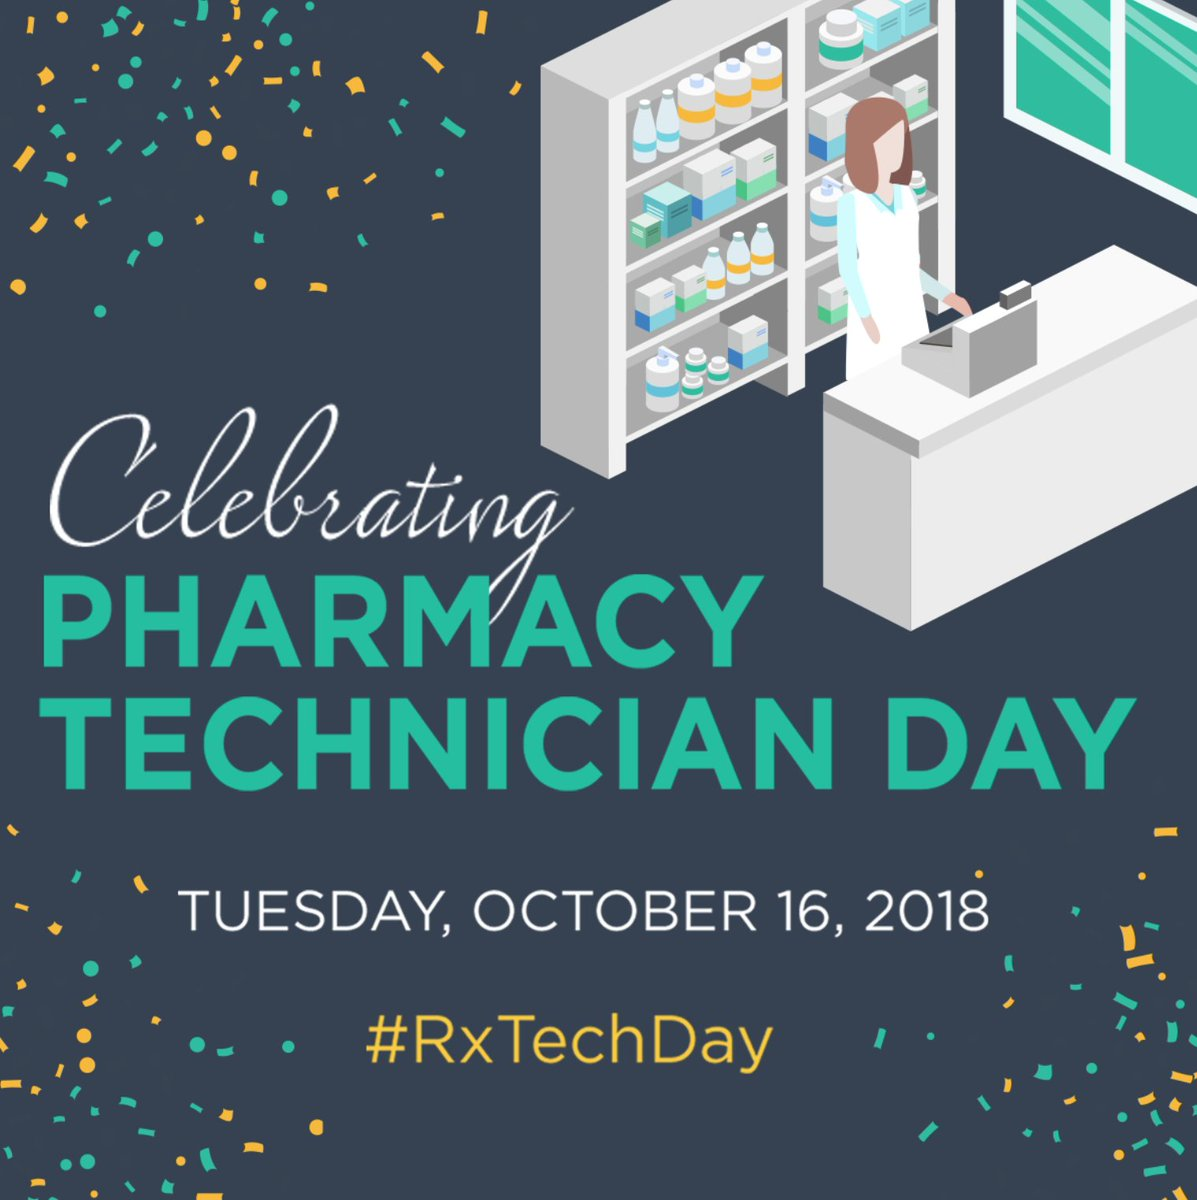 RT @iporpharmacy: Happy Pharmacy Technician Day! #RxTechDay https://t.co/PnJPafTVR2